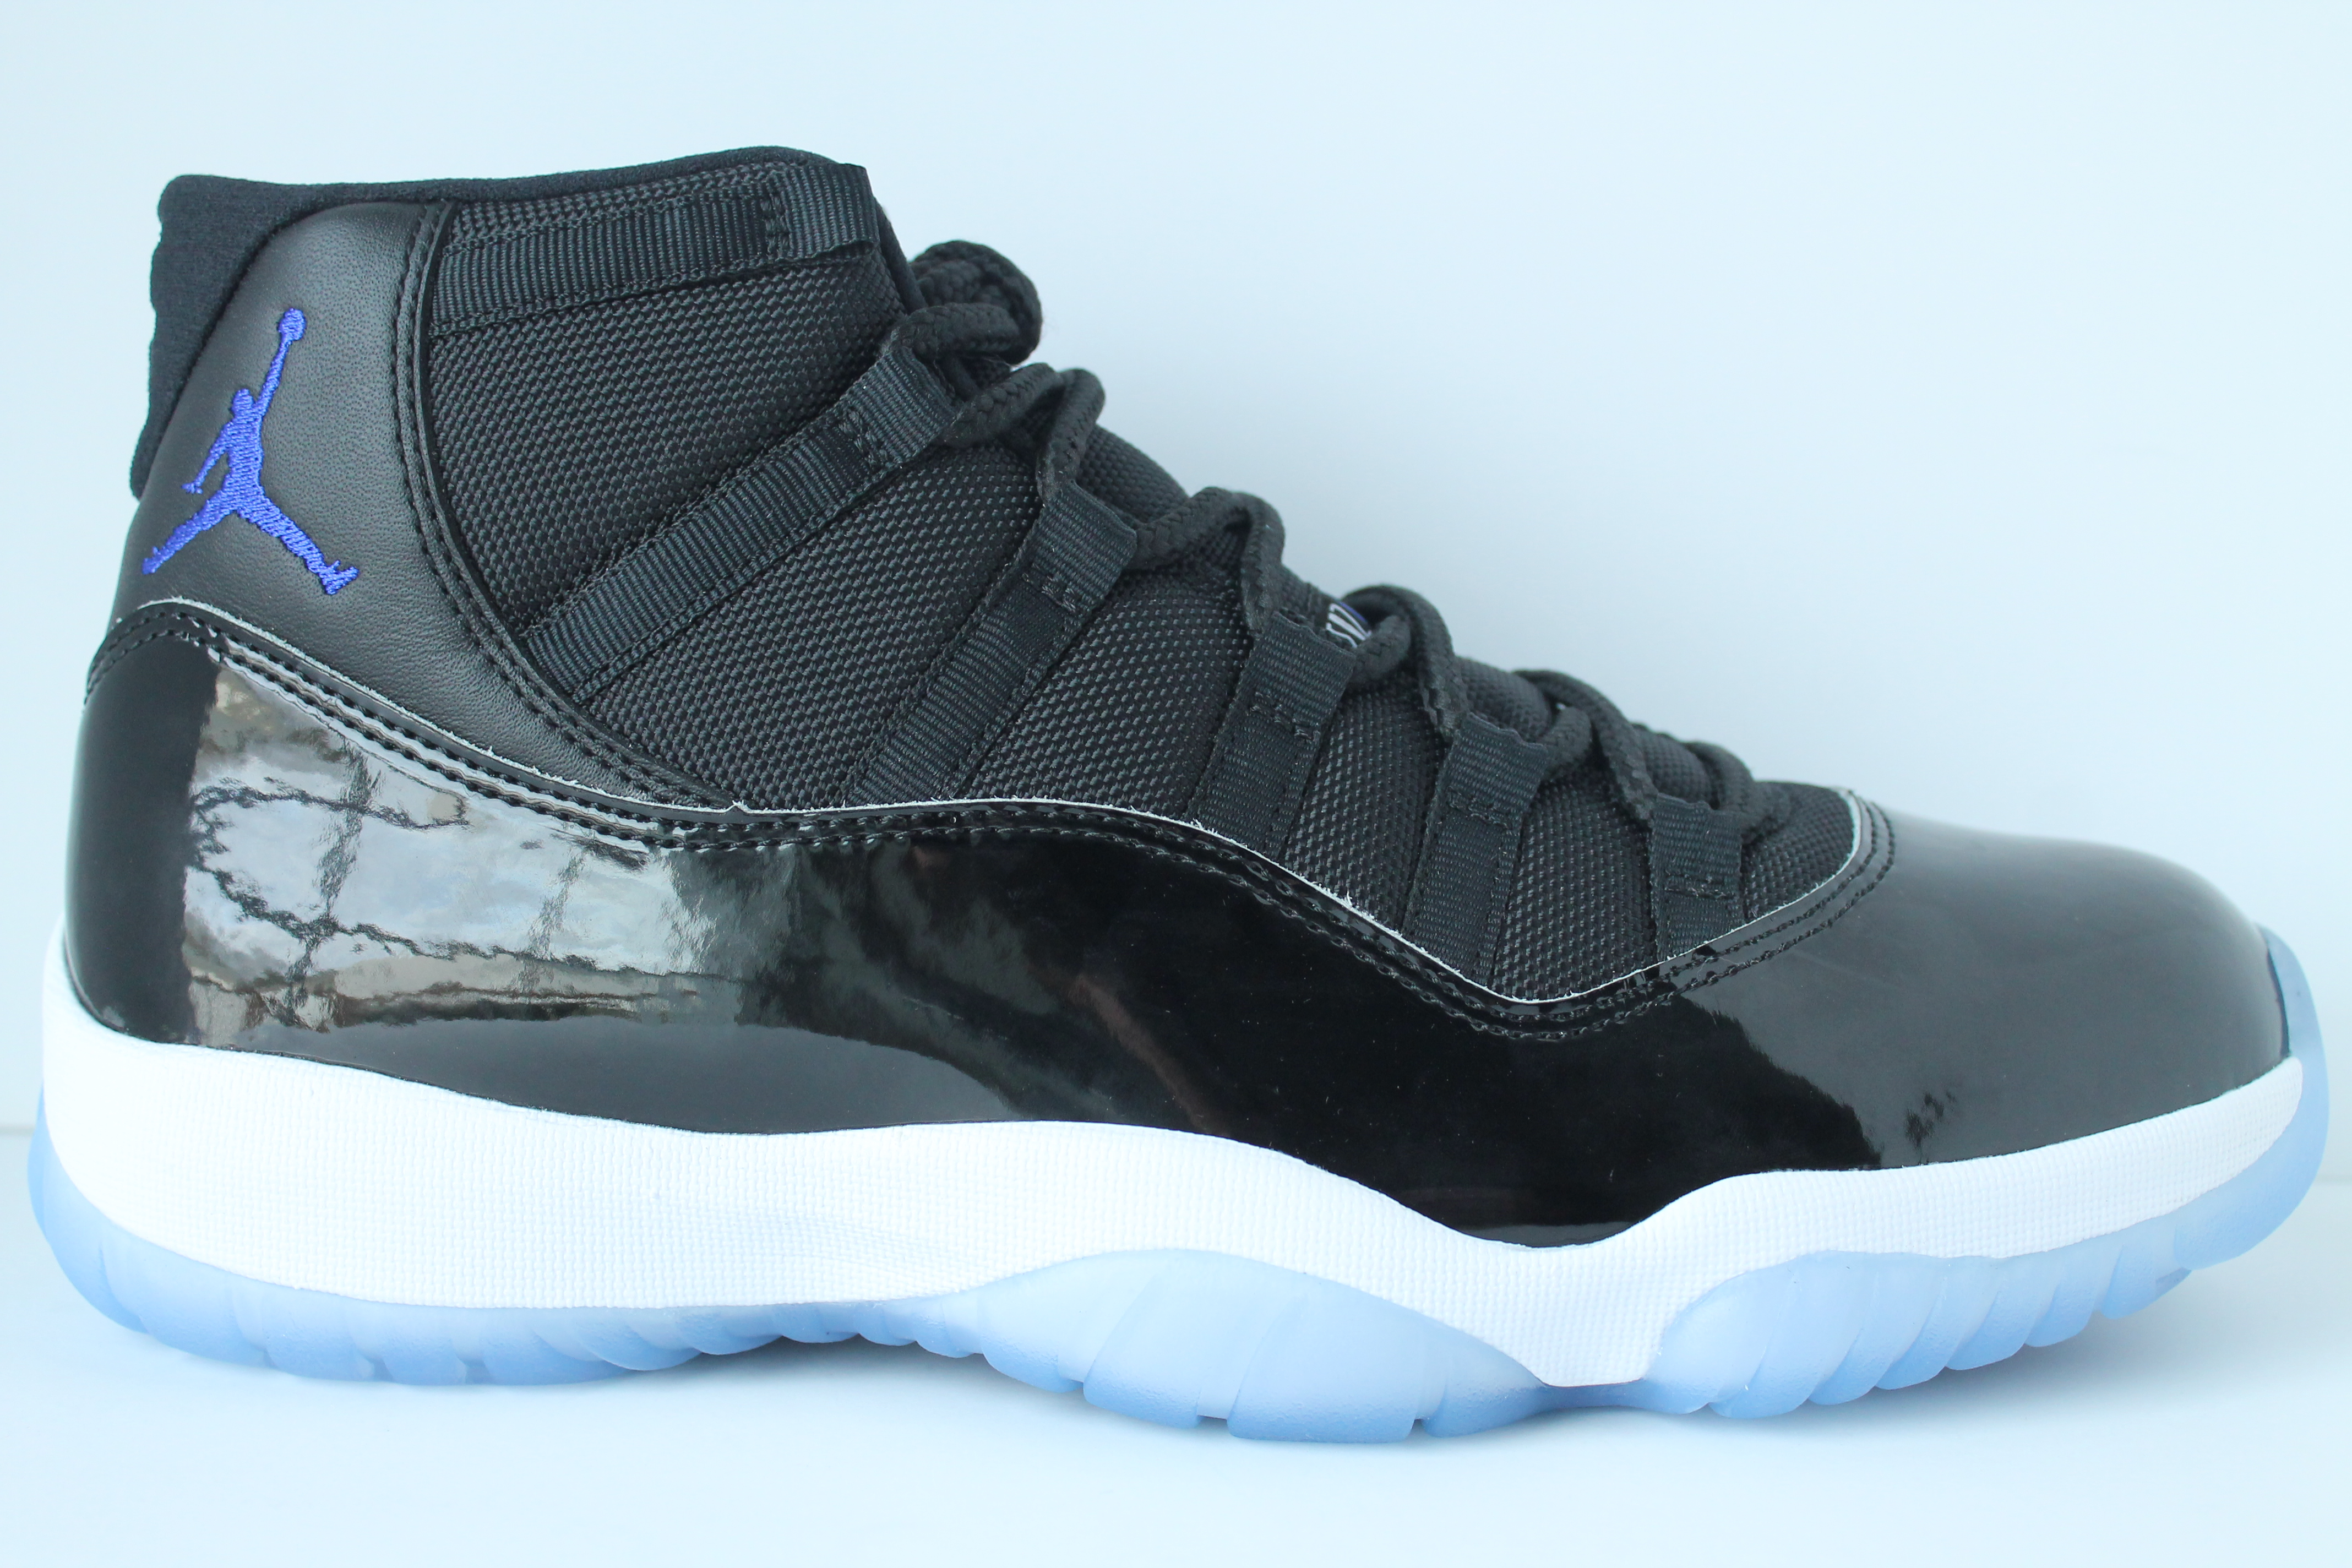 3f8ae8a97d1 AuthentKicks | Air Jordan 11 Retro Space Jam